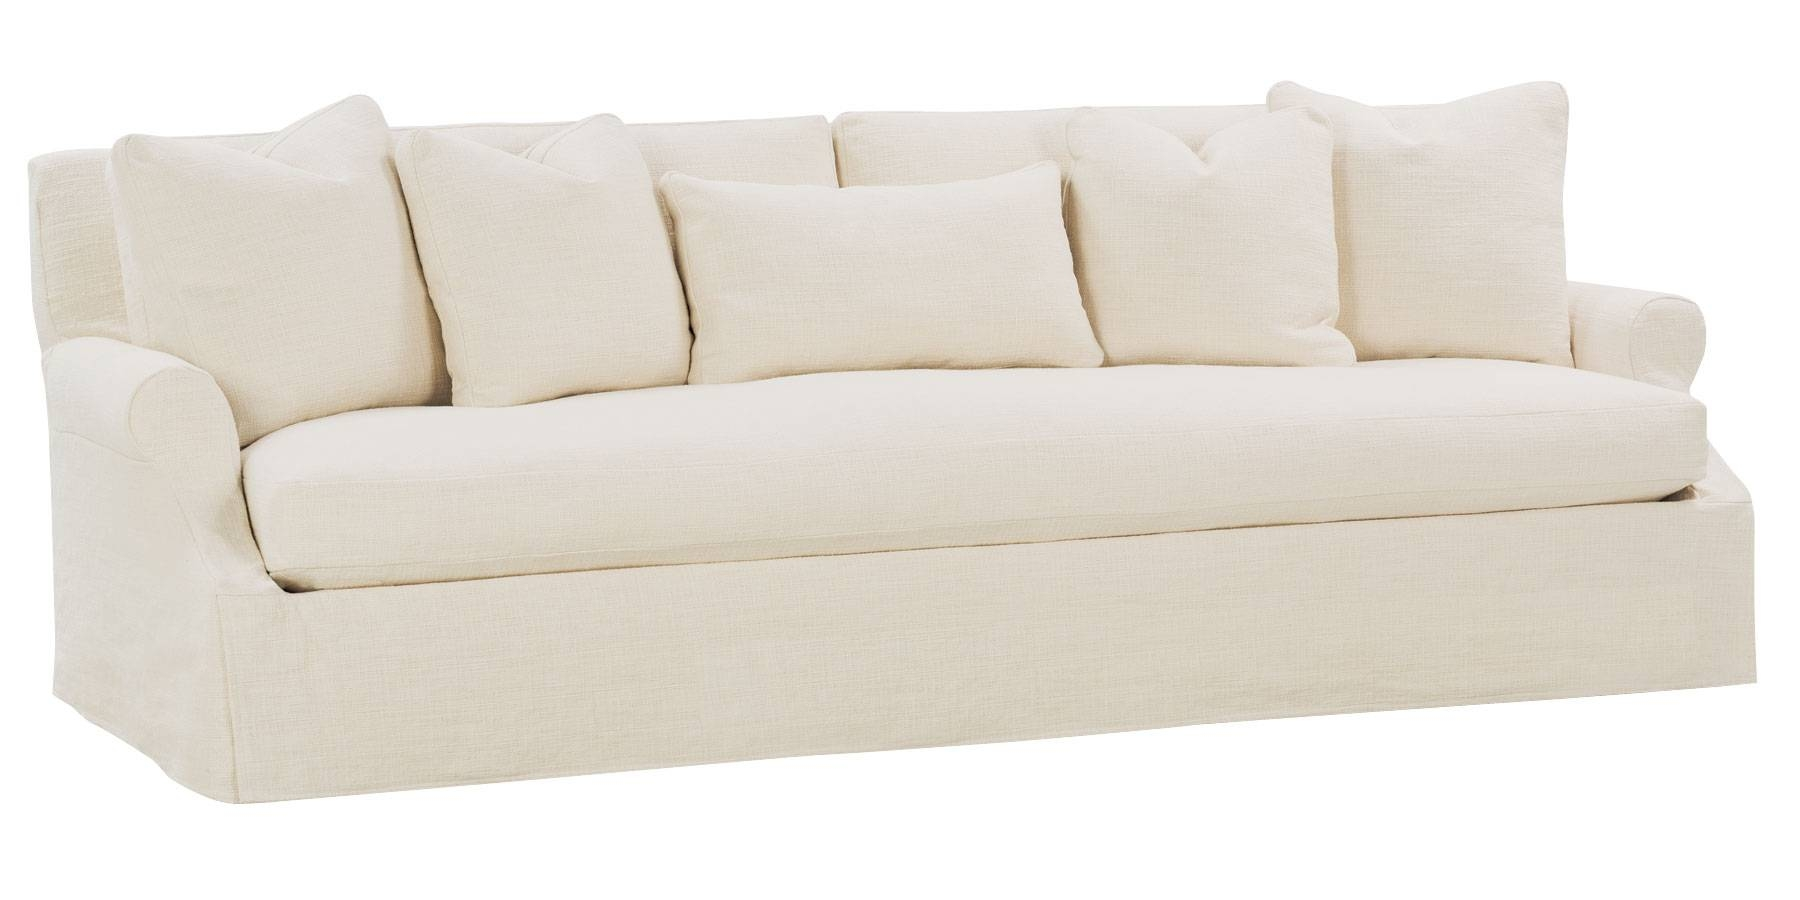 Slipcovered 3 Lenghts Select-A-Size Bench Seat Extra Long Grand for Bench Style Sofas (Image 8 of 15)